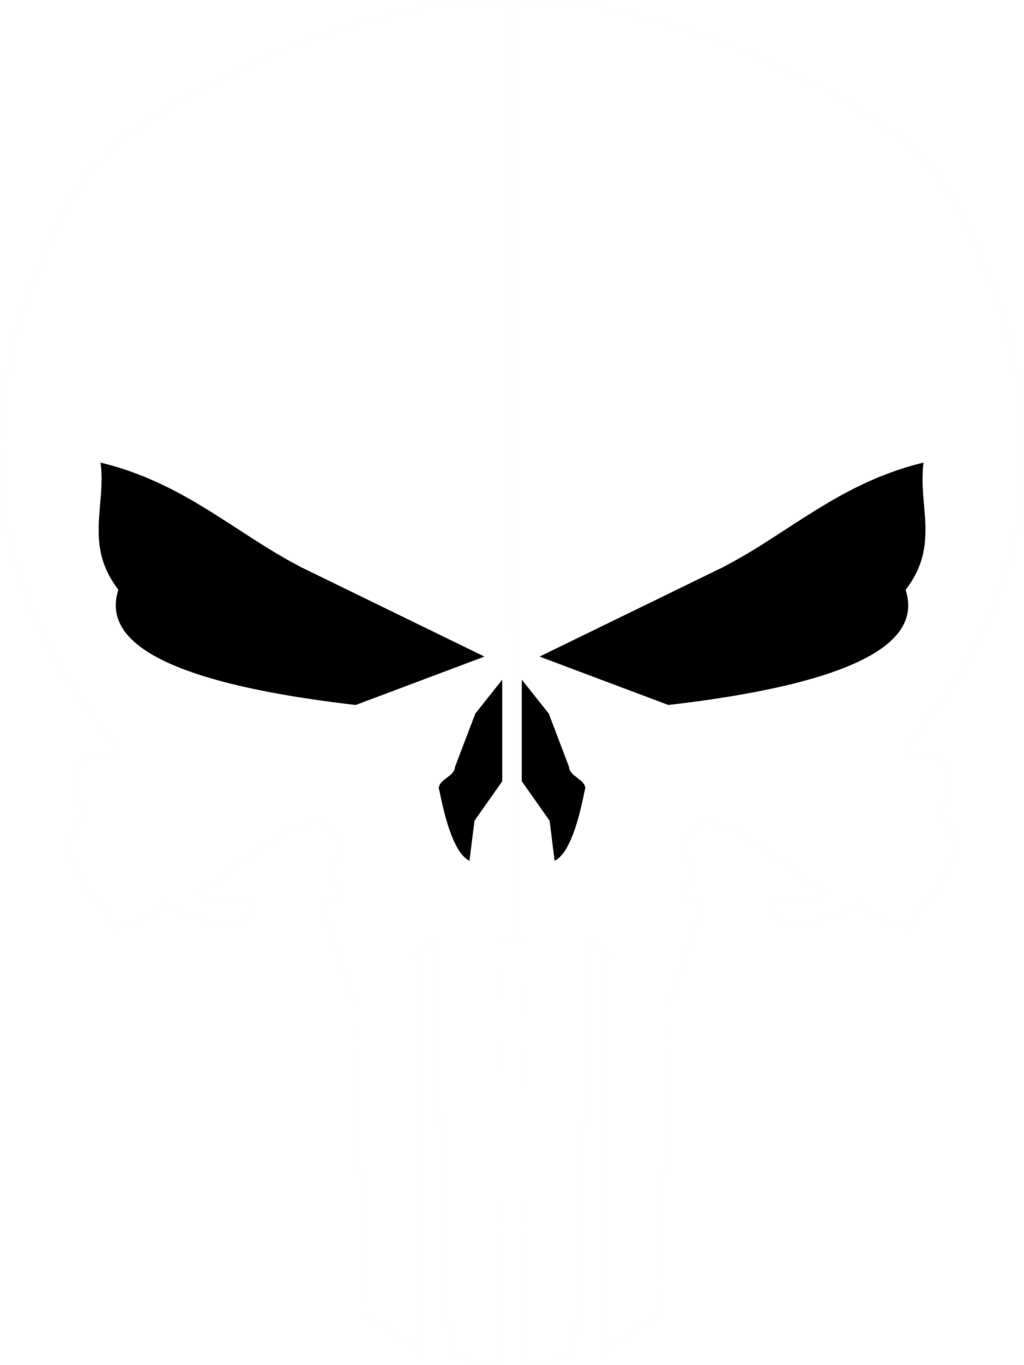 American vector punisher. Image skull by jmk